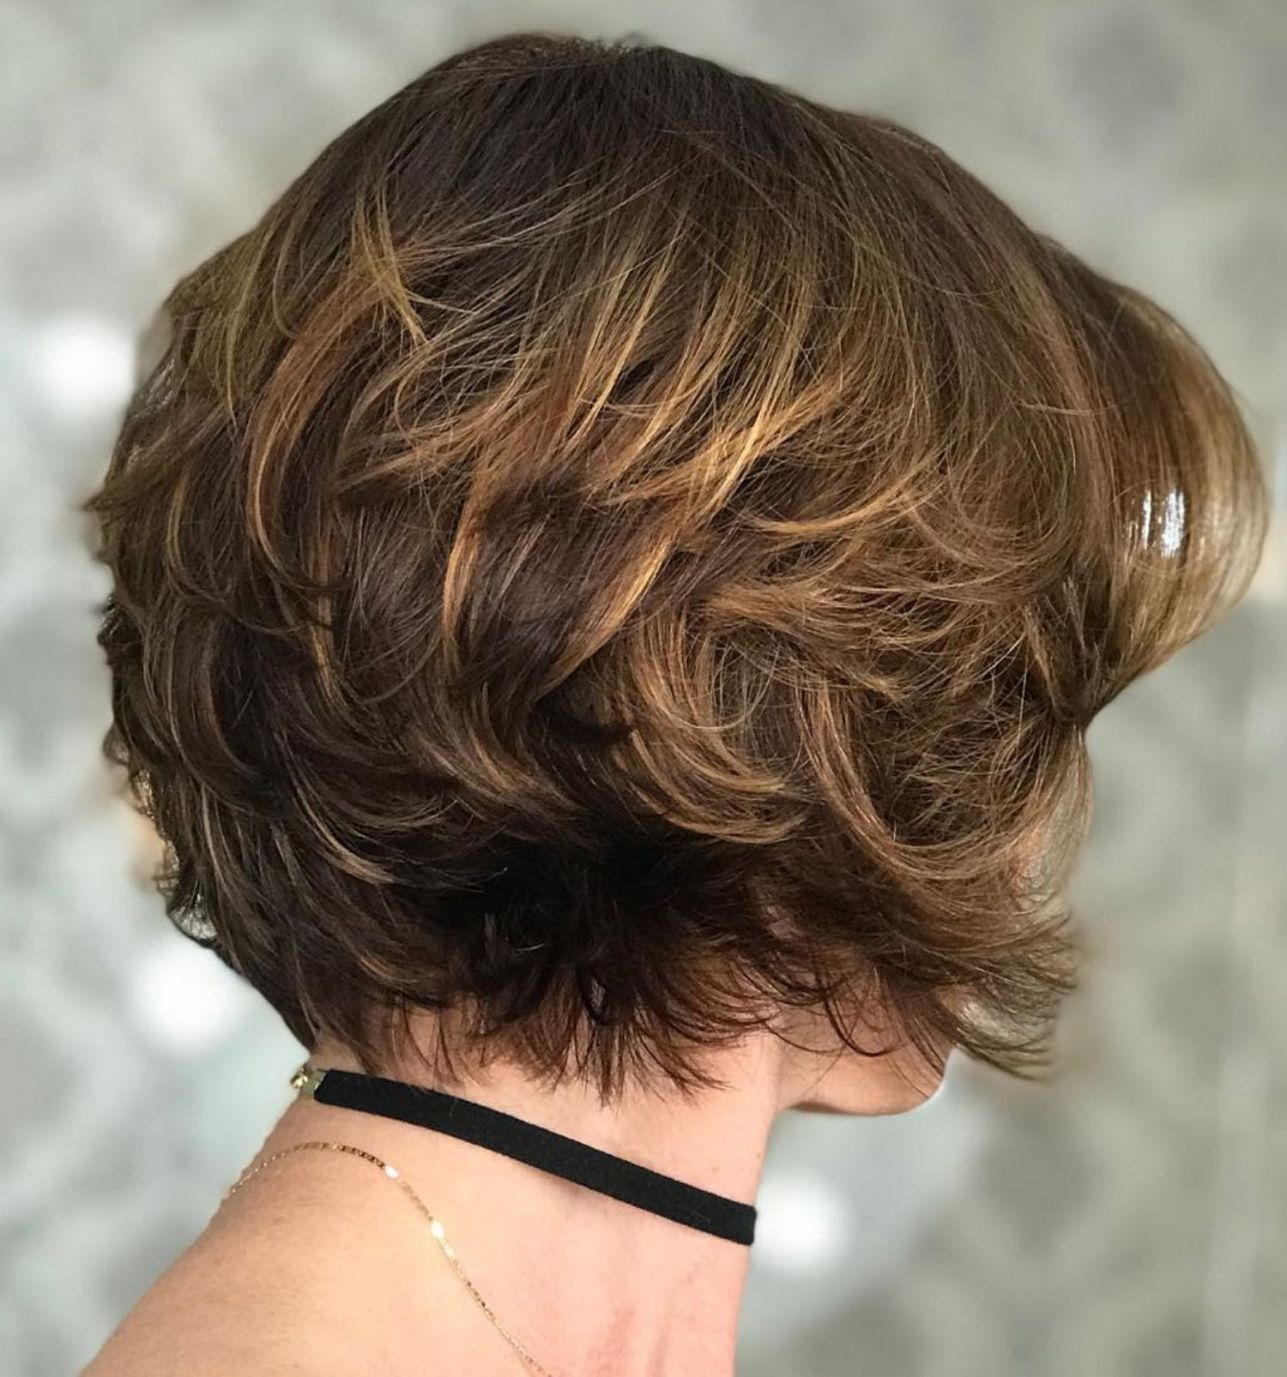 50++ Feathered low maintenance short layered haircuts ideas